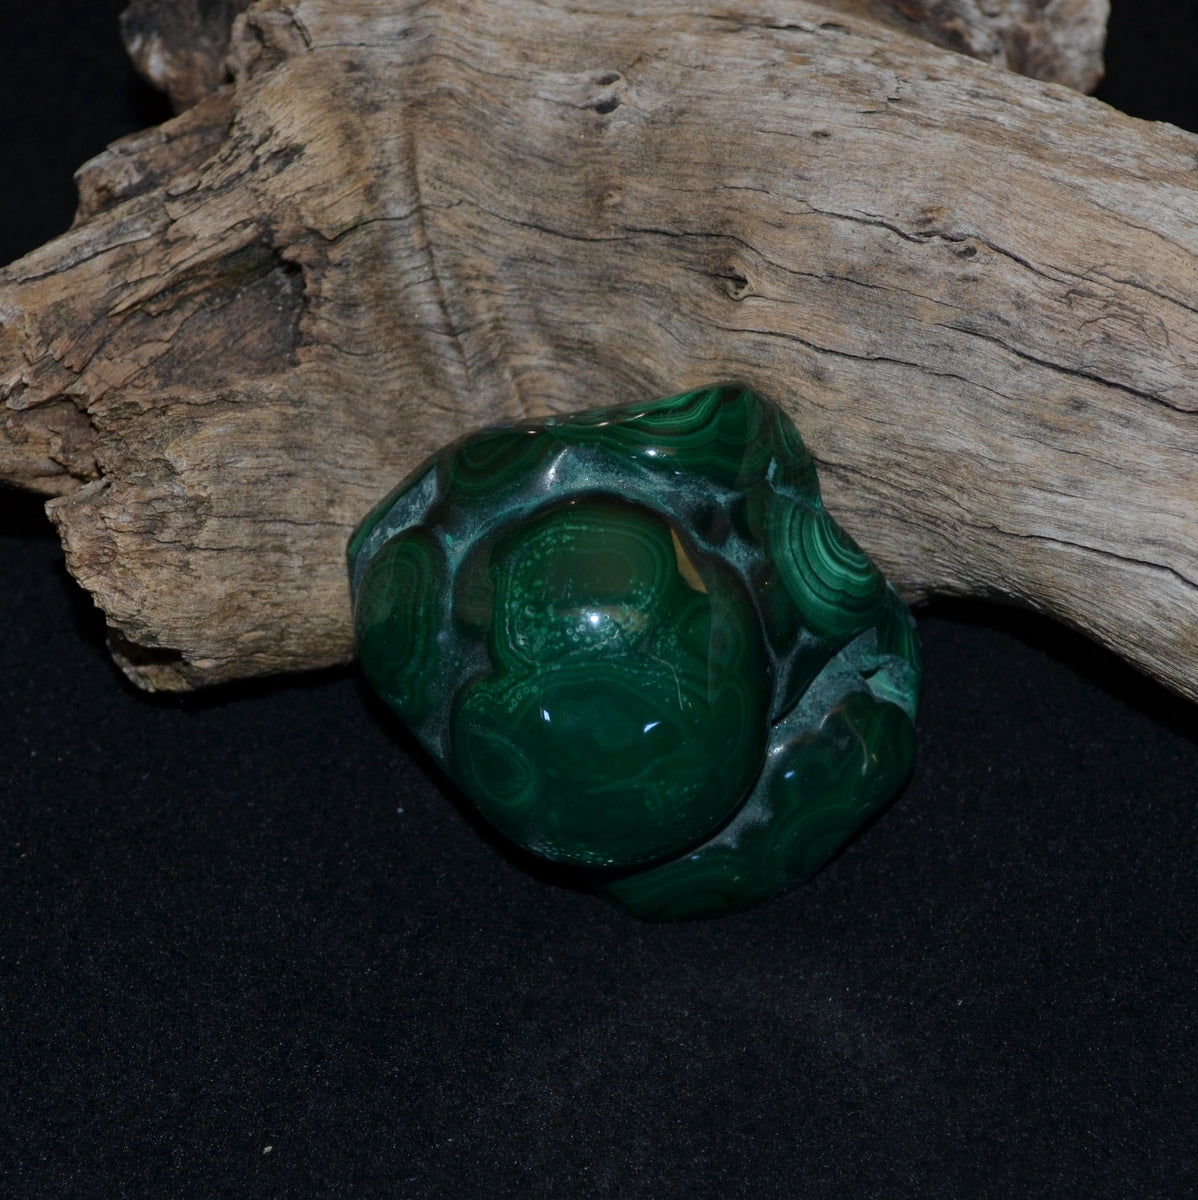 Malachite Polished Freeform - Protection Truth Heart Healing - Shop Now at Illiom Crystals - Now with Afterpay